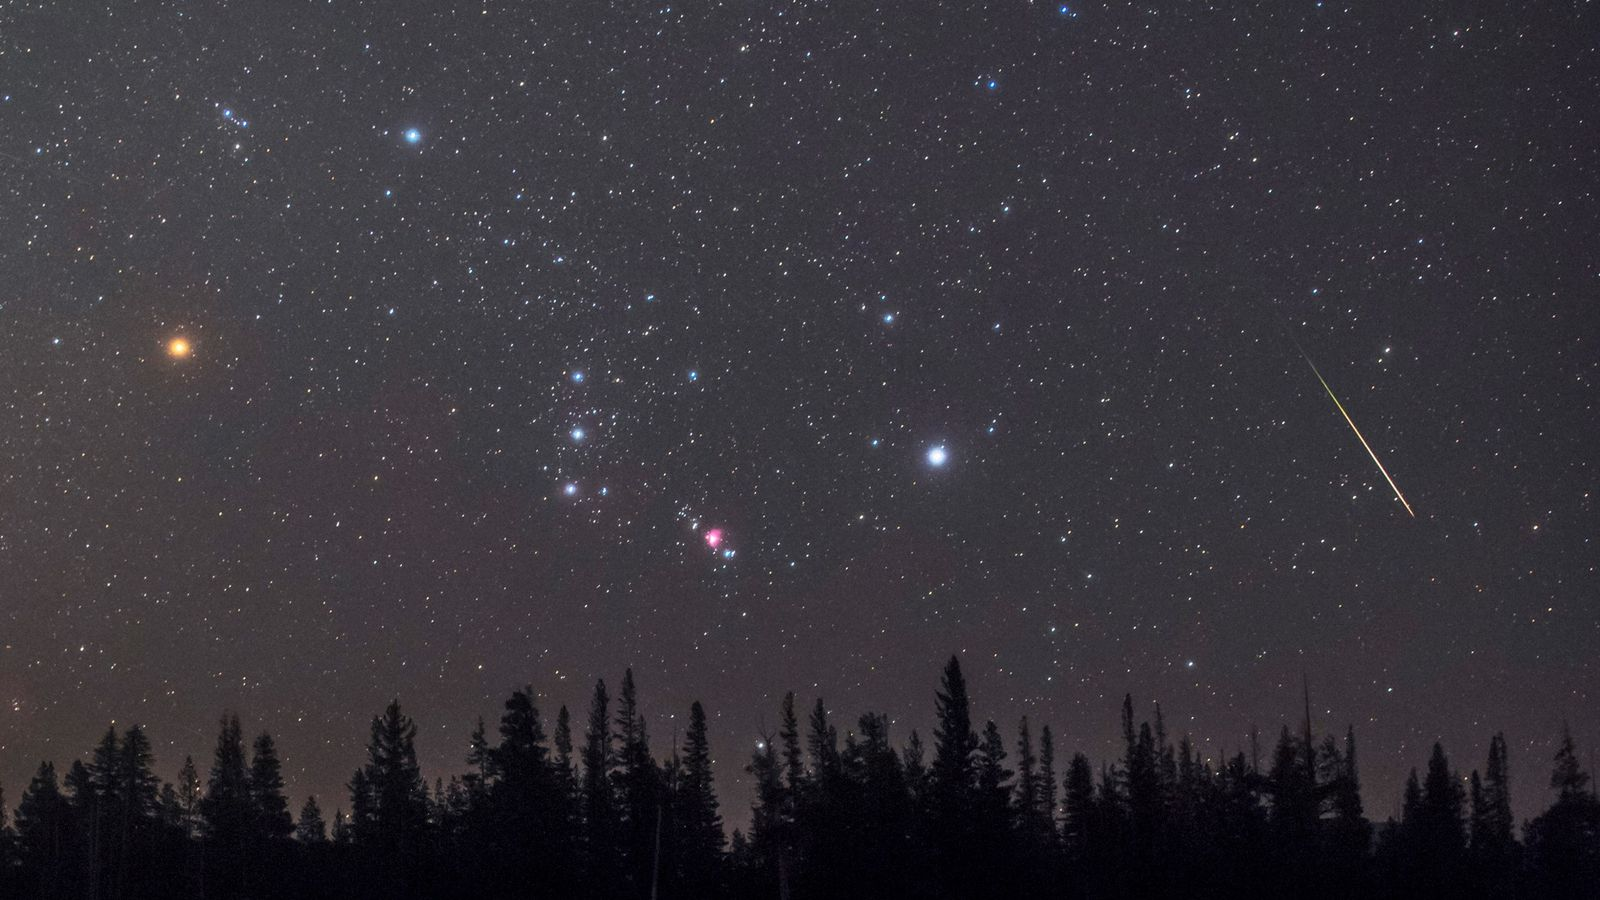 A meteor streaks past the constellation Orion, the hunter, as it hovers over the horizon. The ...